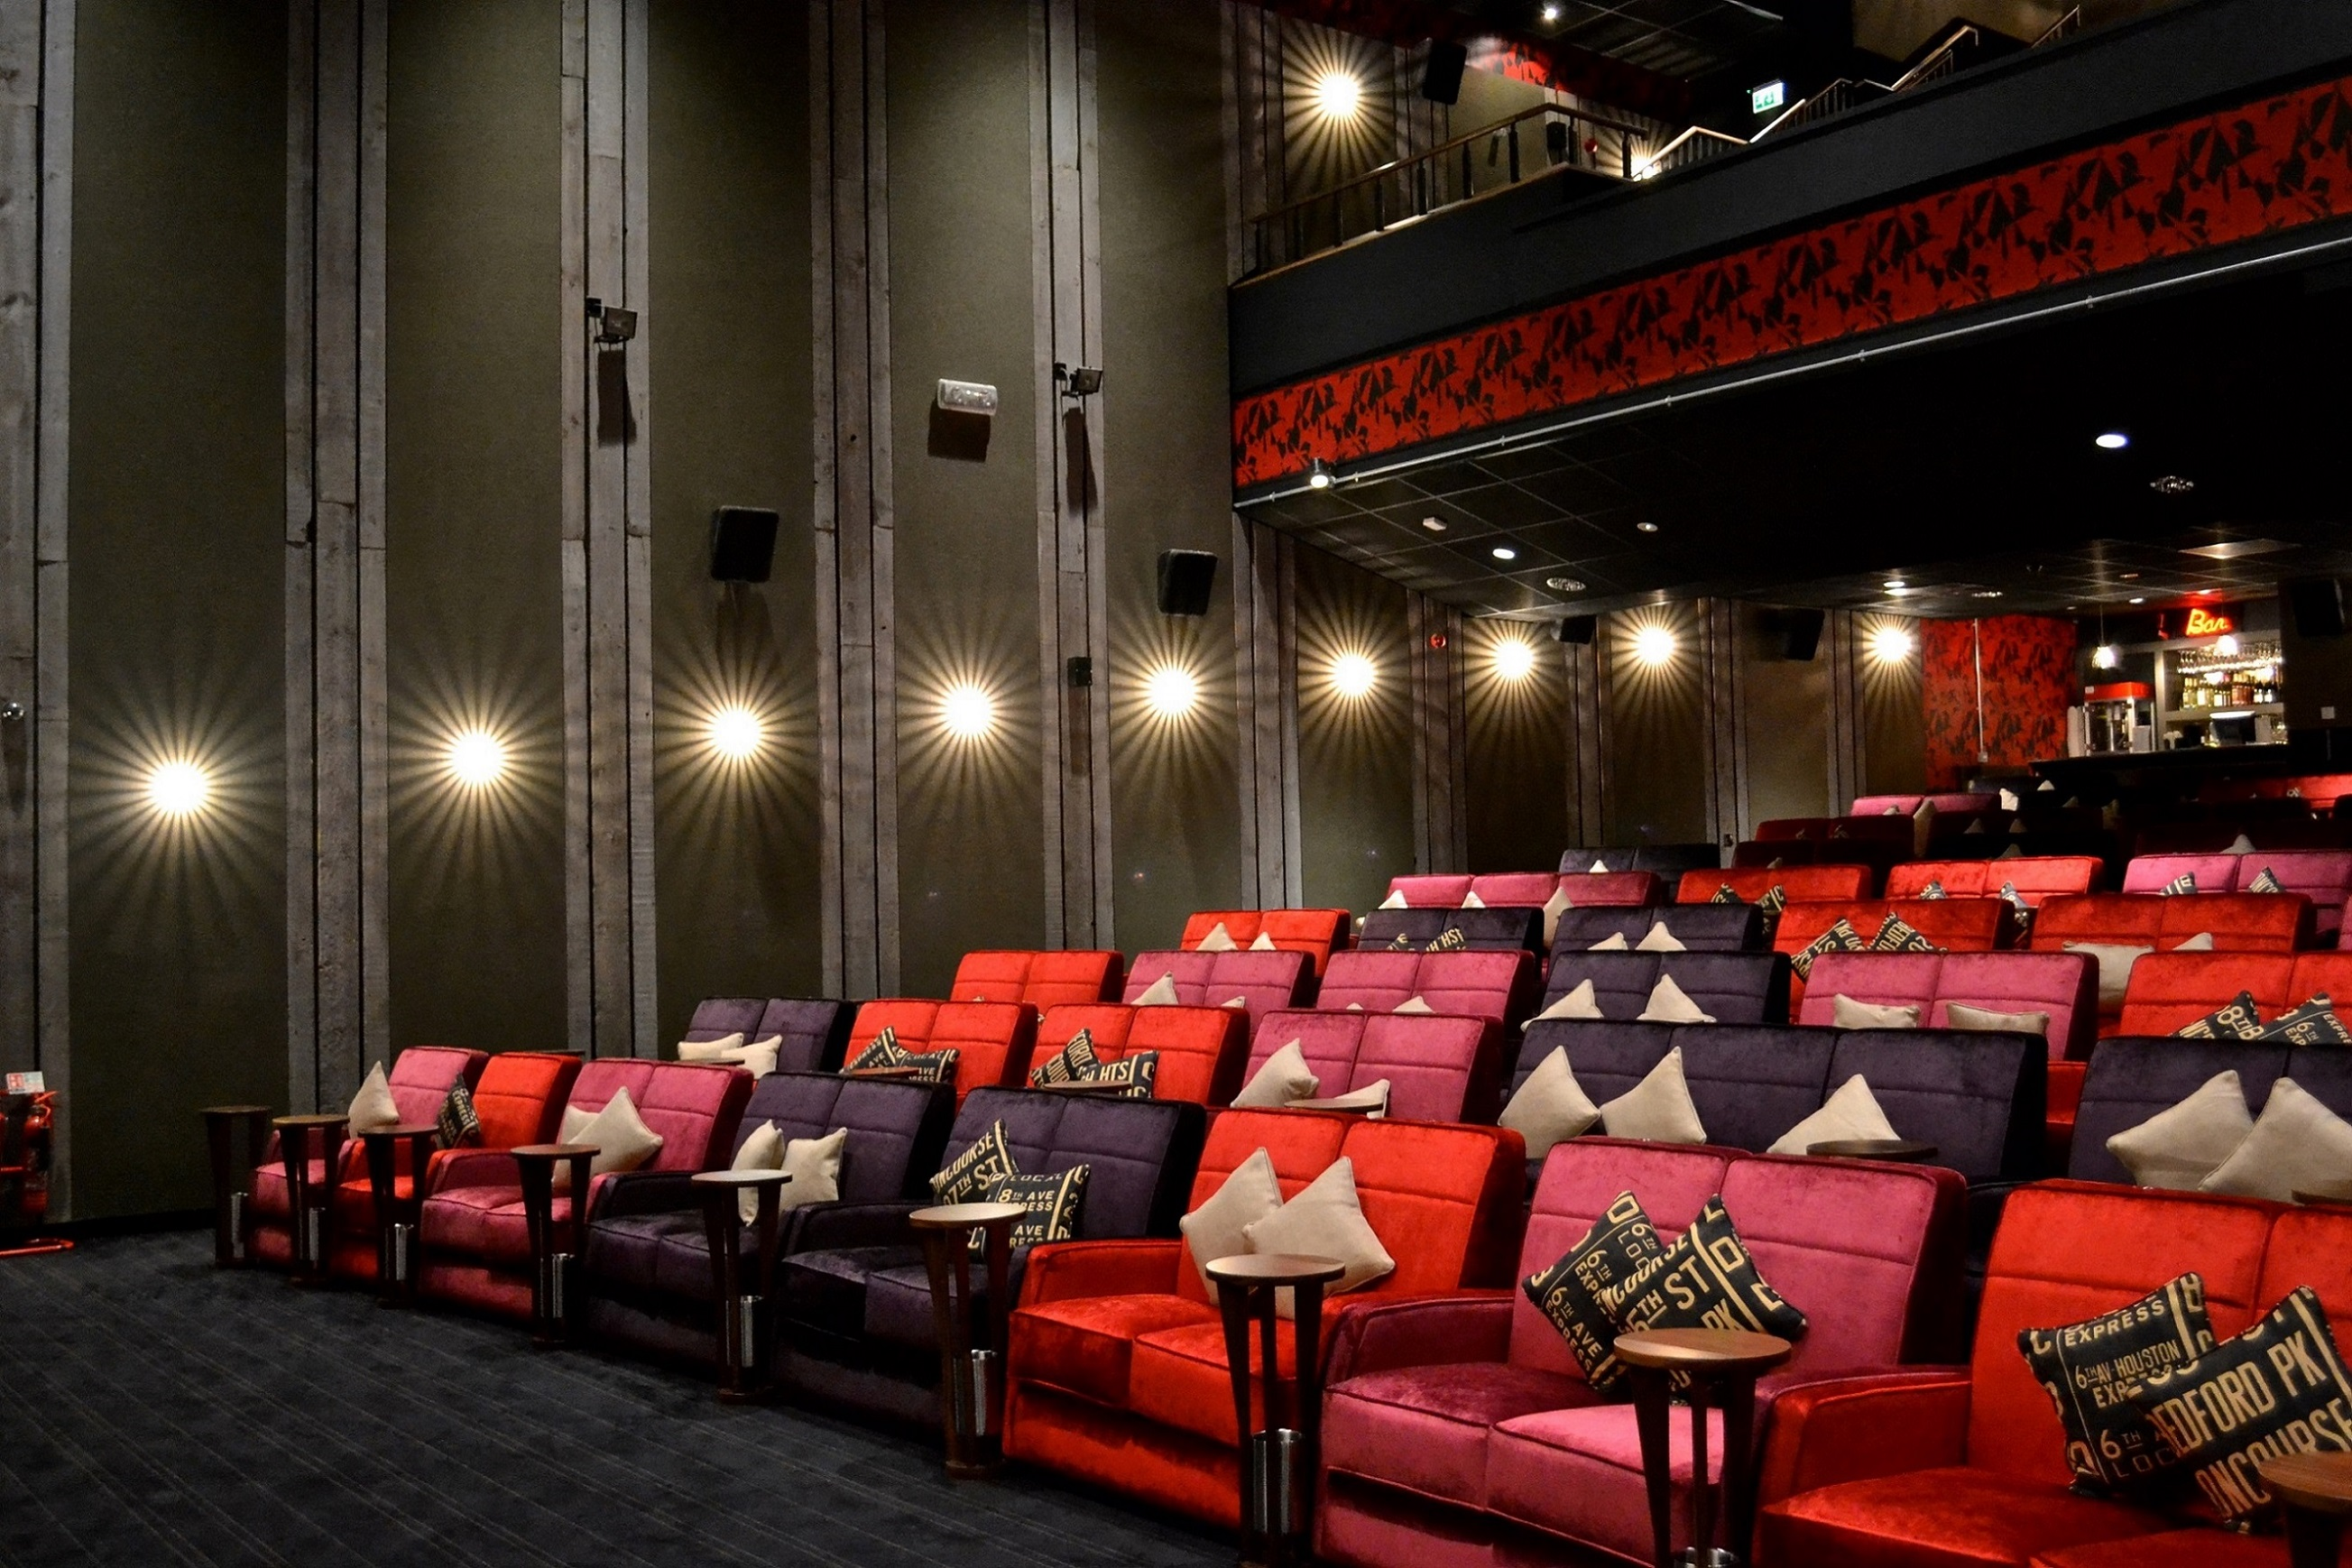 Prestige Cinema Operator Everyman to Join Treadmills